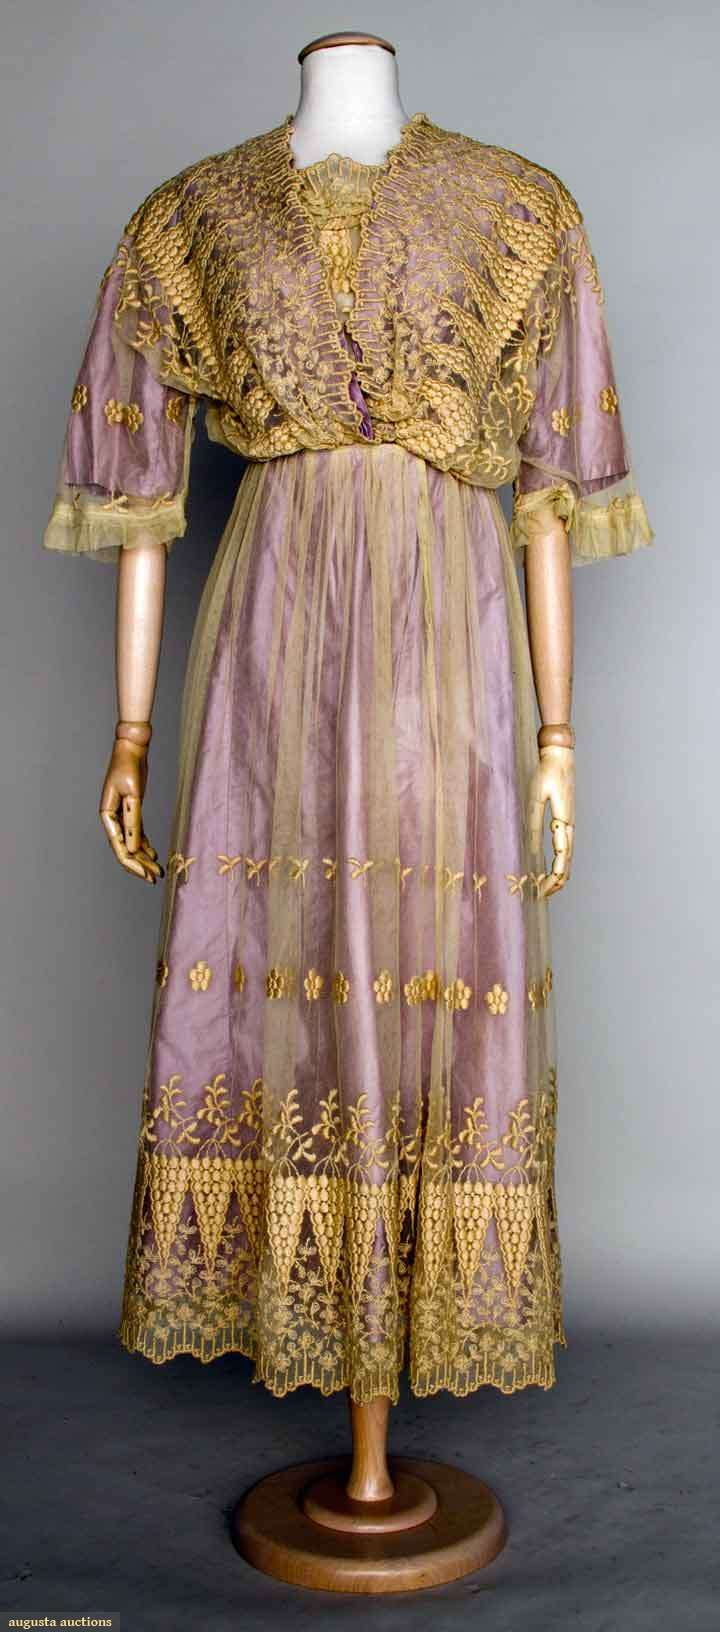 1914-1918 embroidered tea gown: Cream cotton net, floral embroidery, and lilac underdress